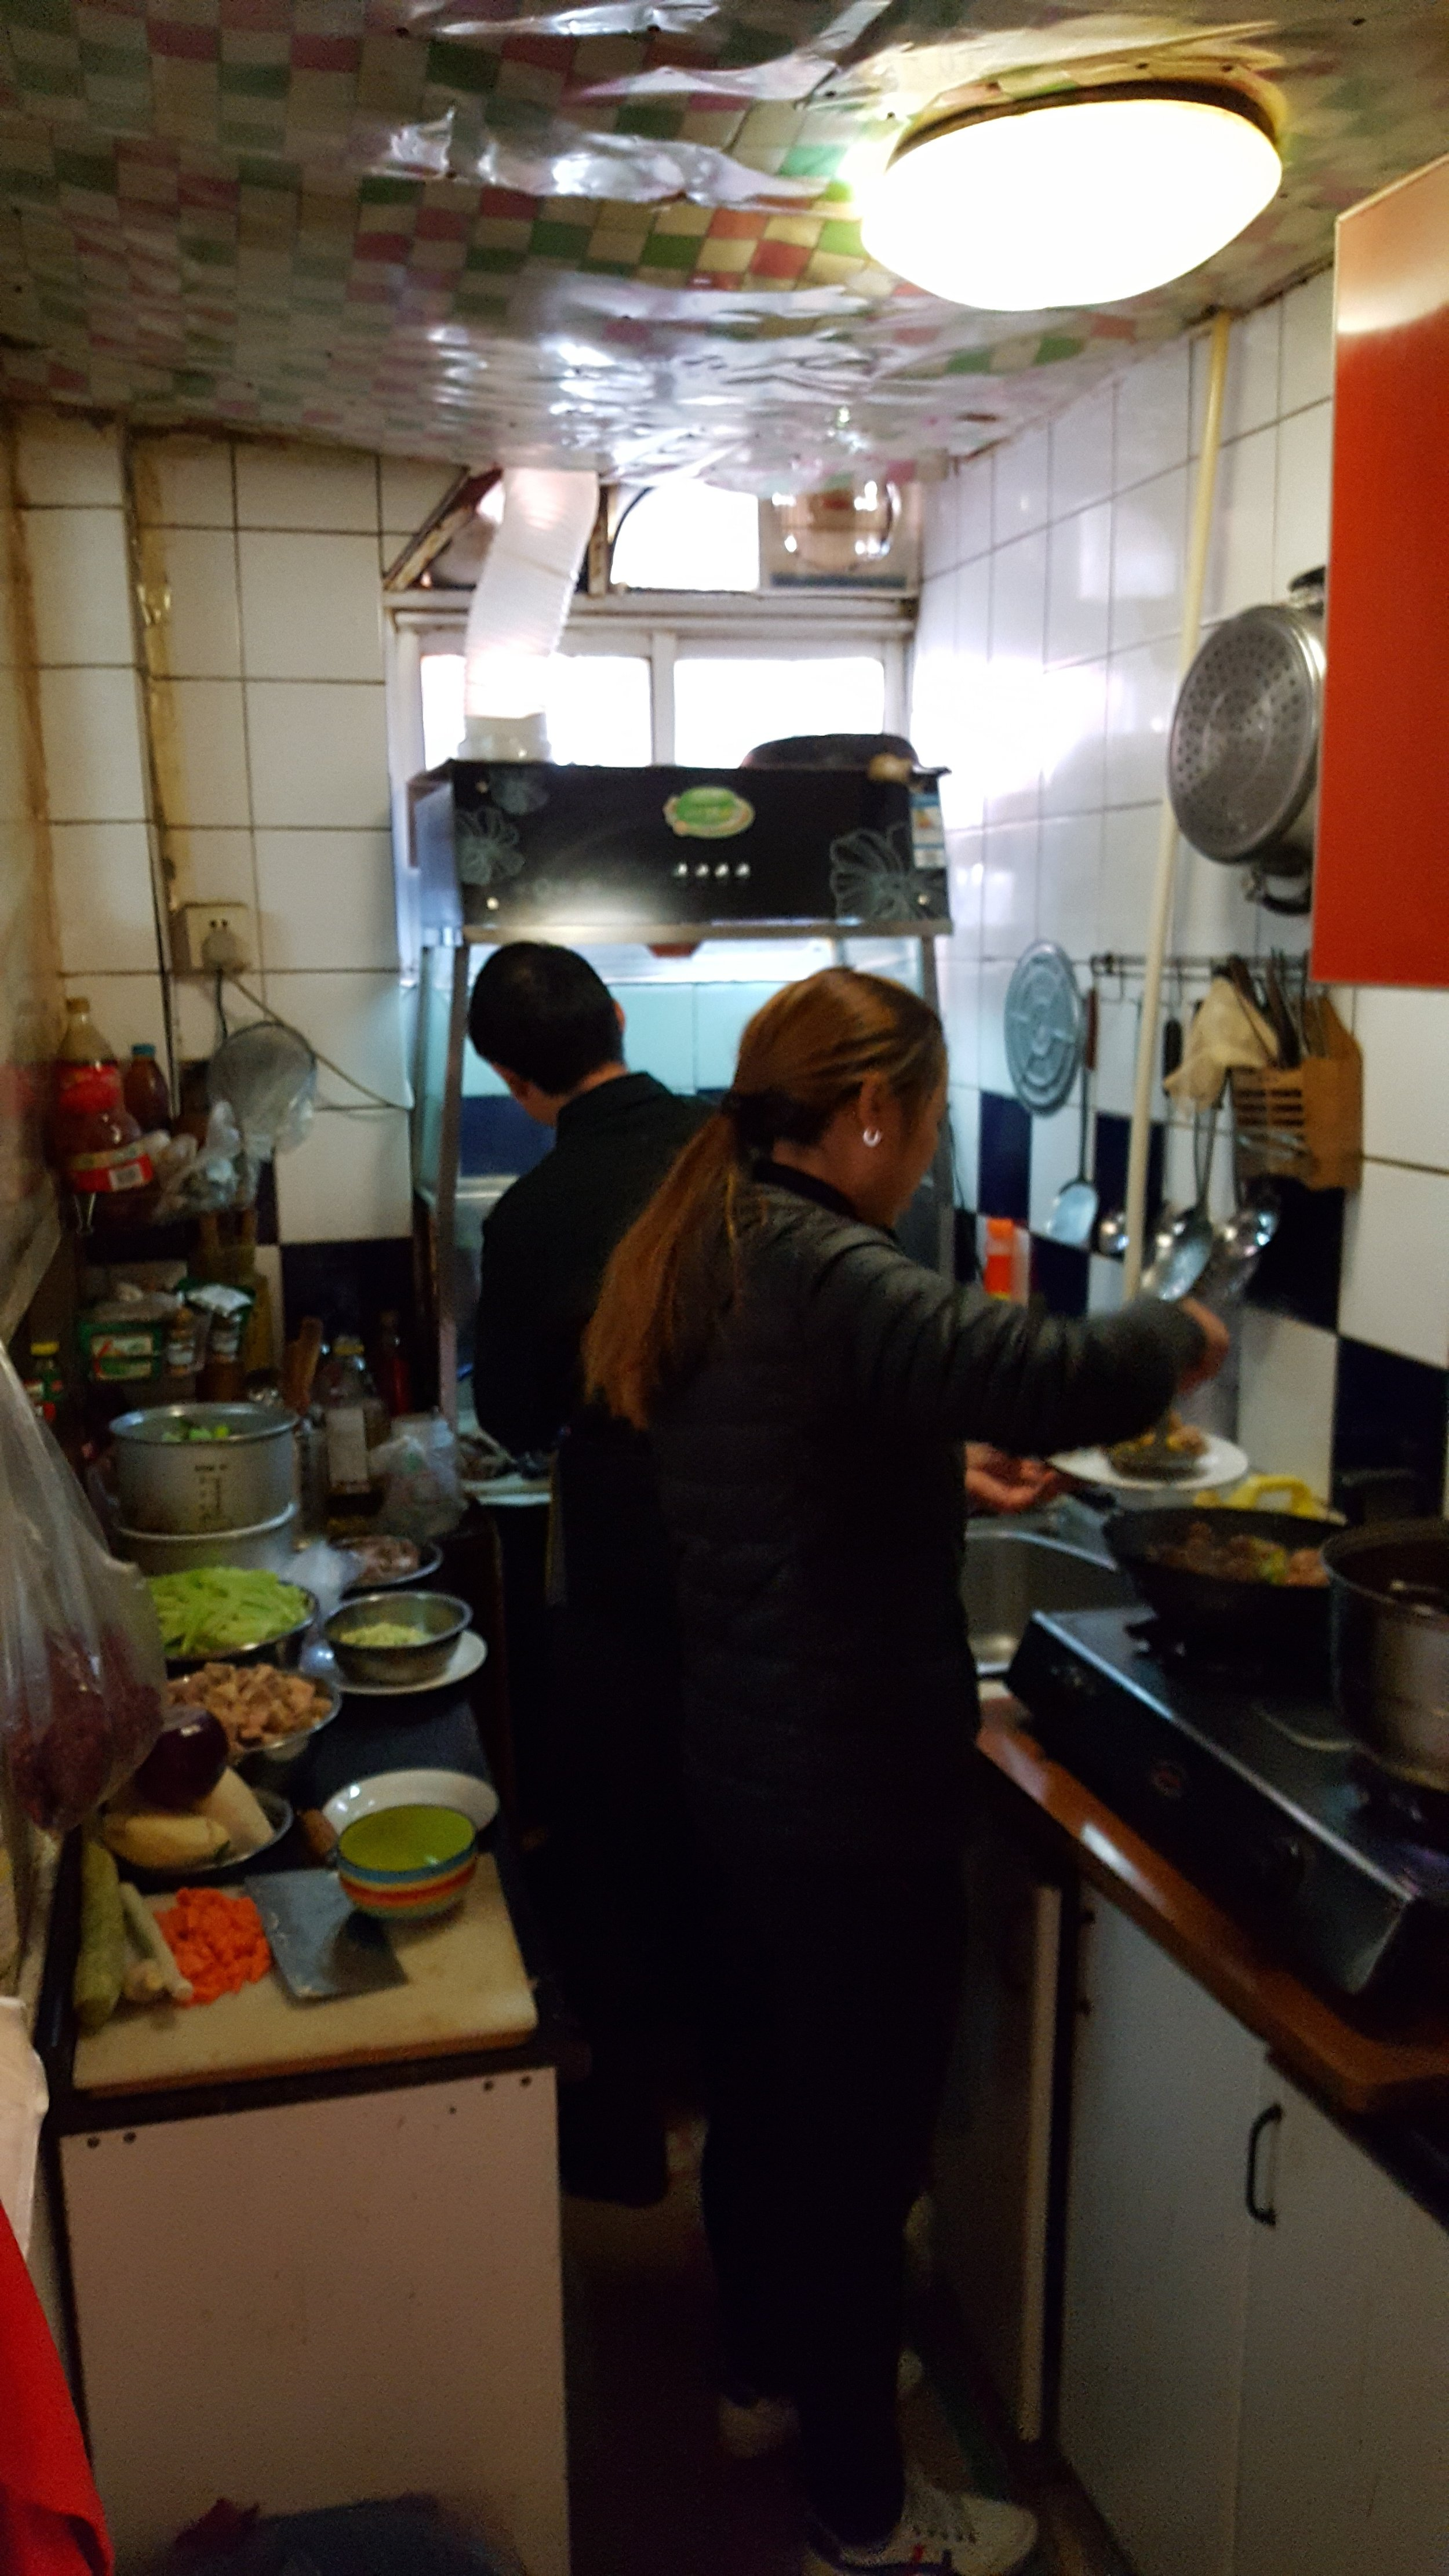 This is the kitchen where they prepared our meal. Truly amazing!